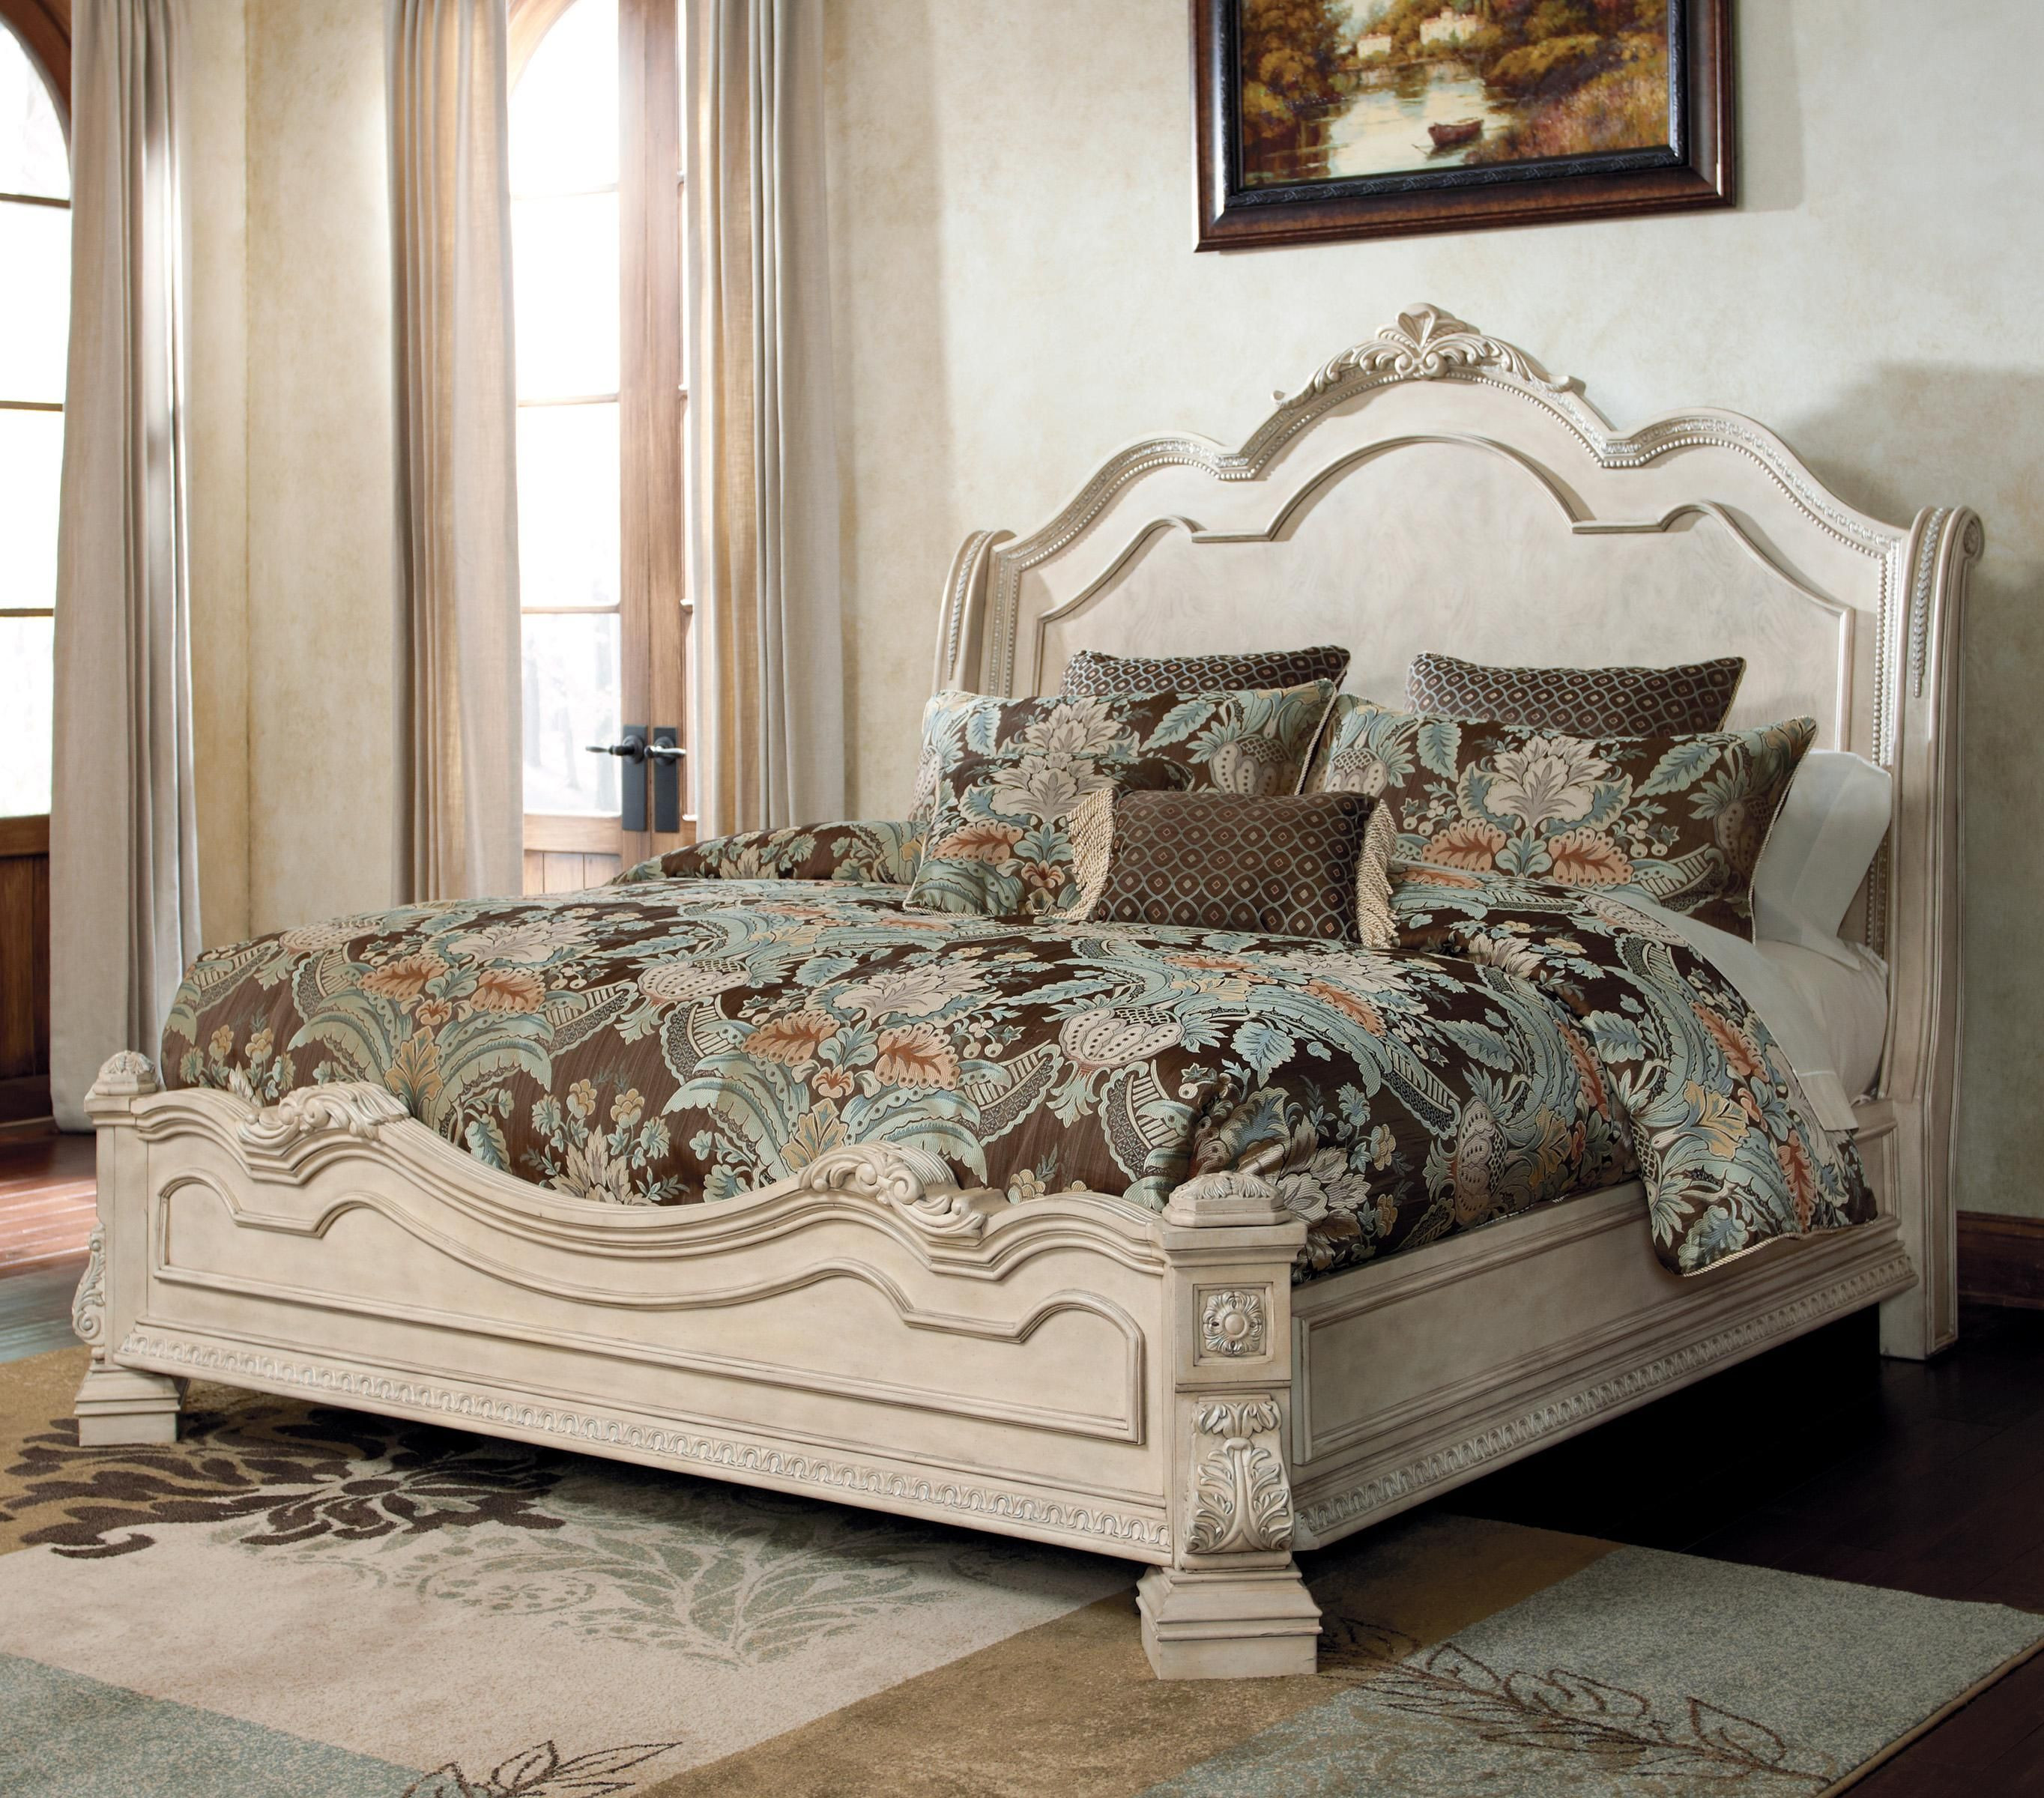 Ashley Millennium Bedroom Set the ortanique Traditional Queen Bed with Sleigh Headboard